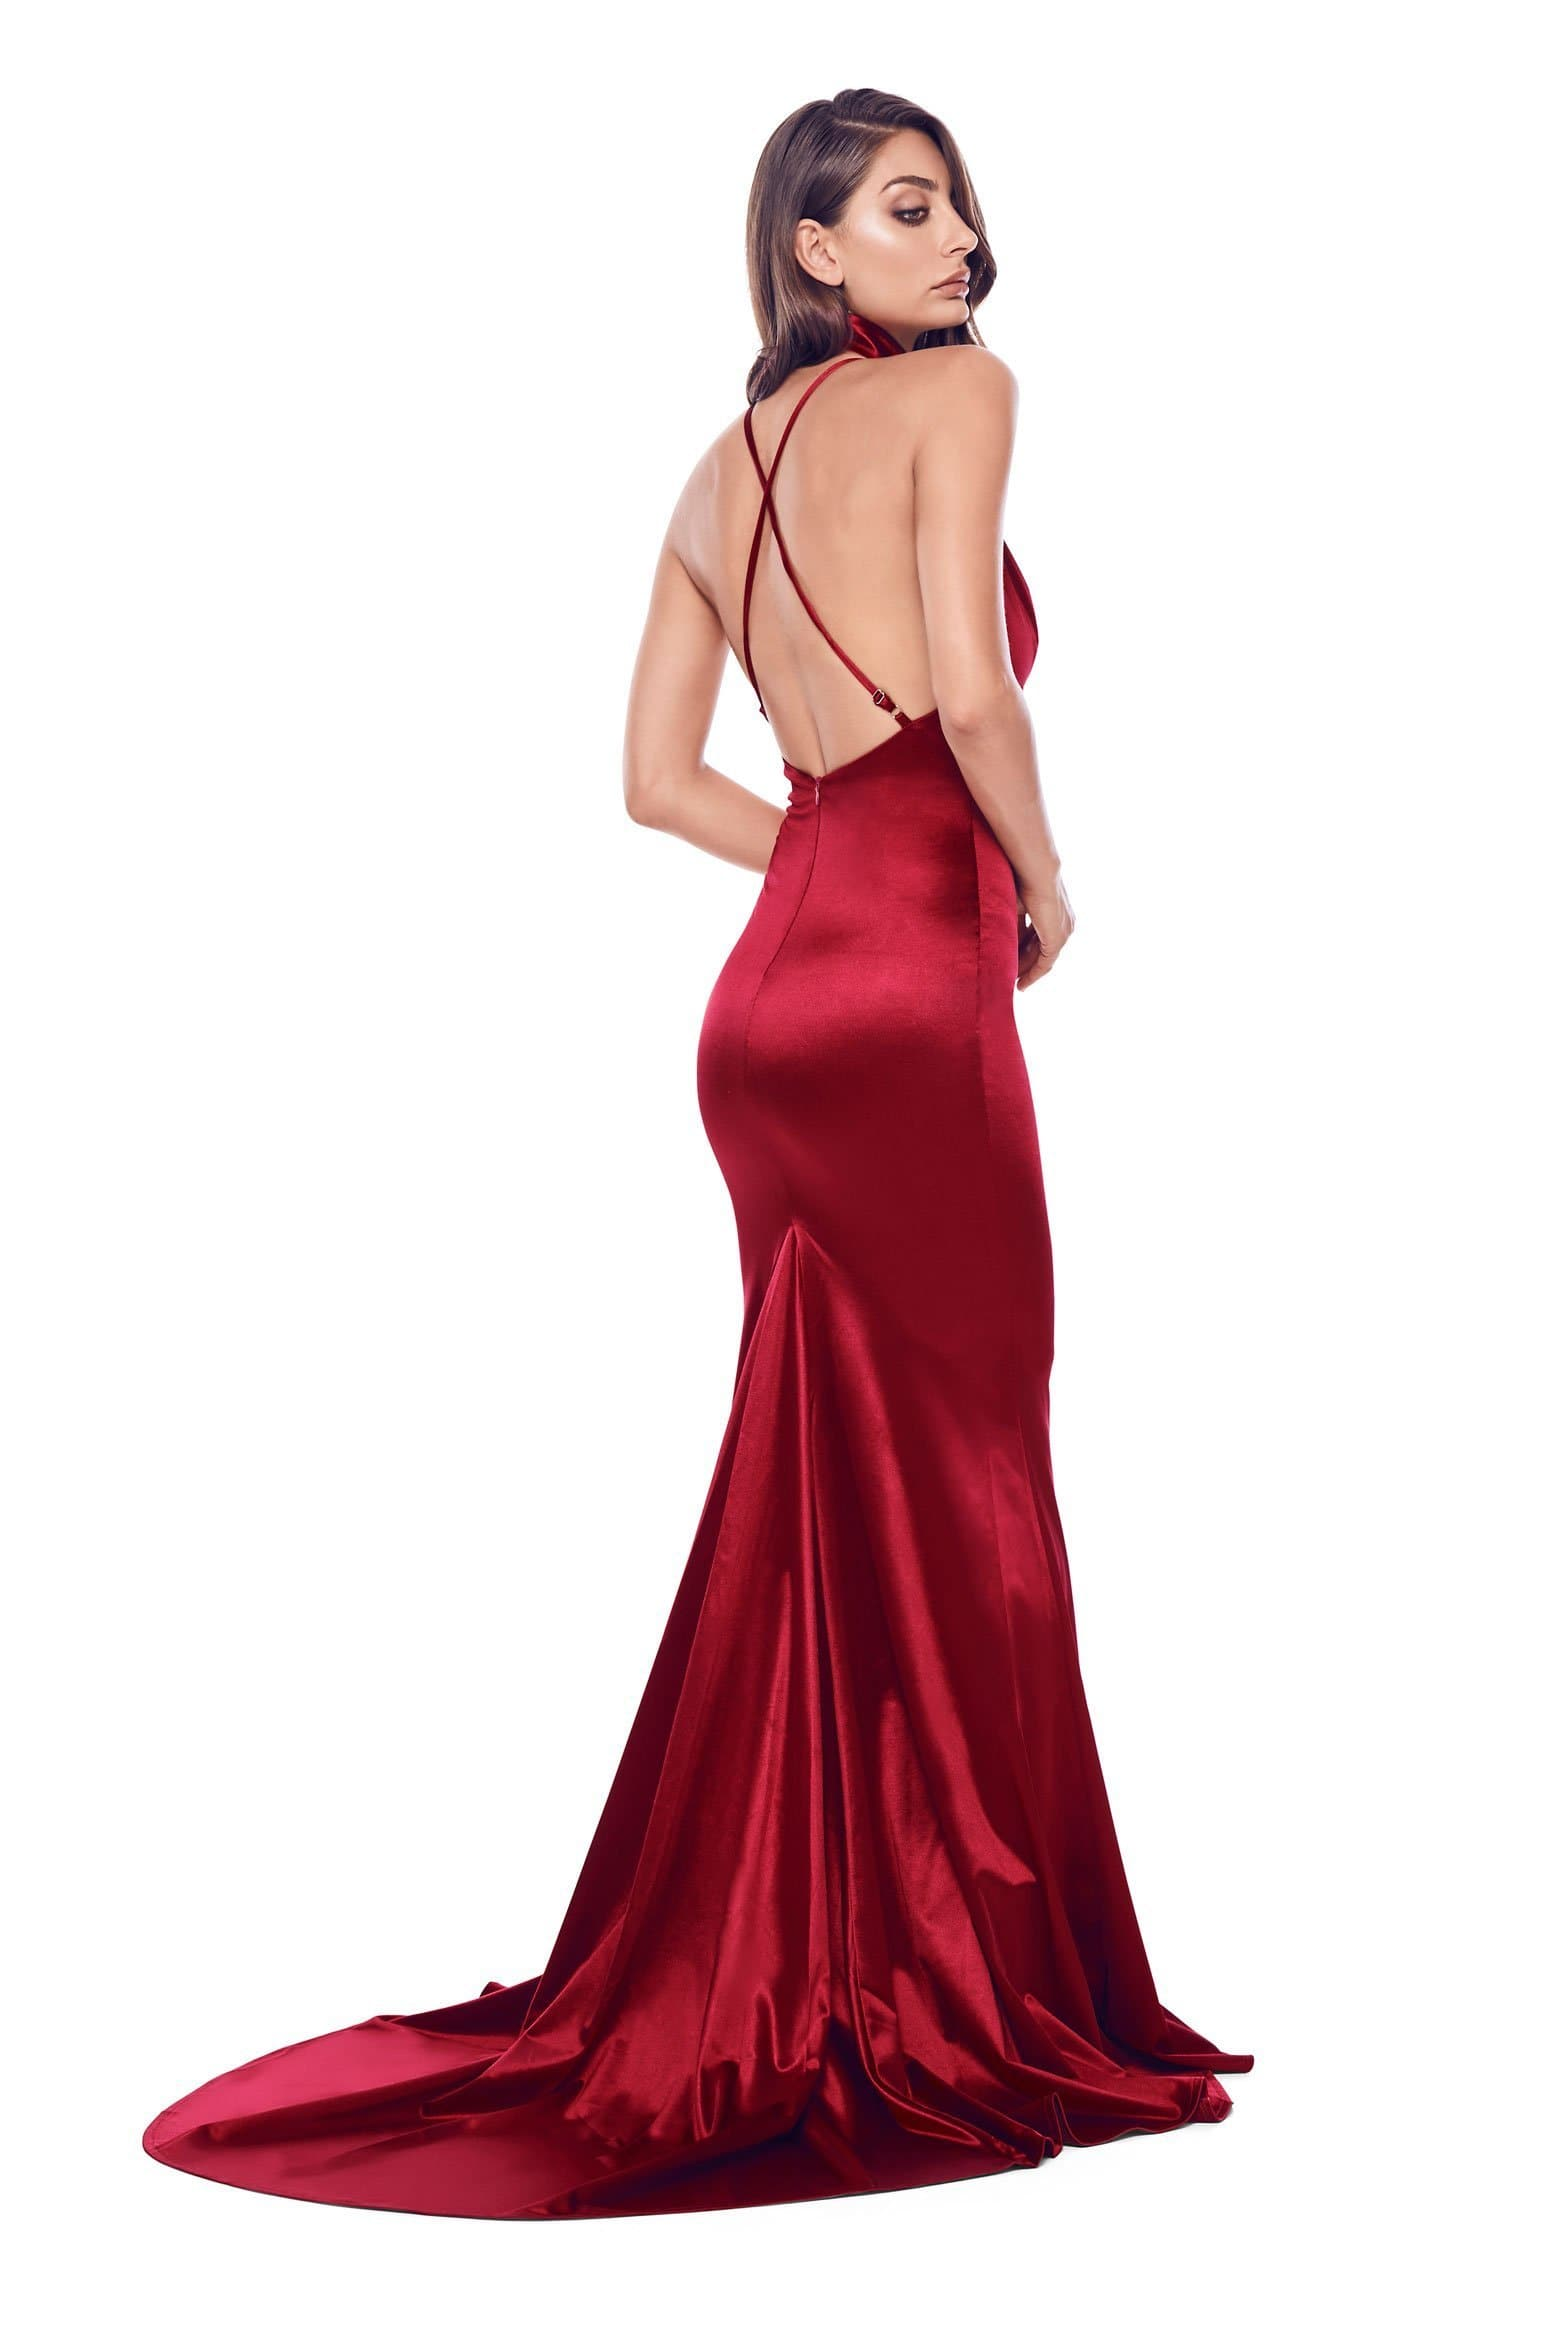 Amina - Wine Red Satin Gown with V Neckline and Low Back